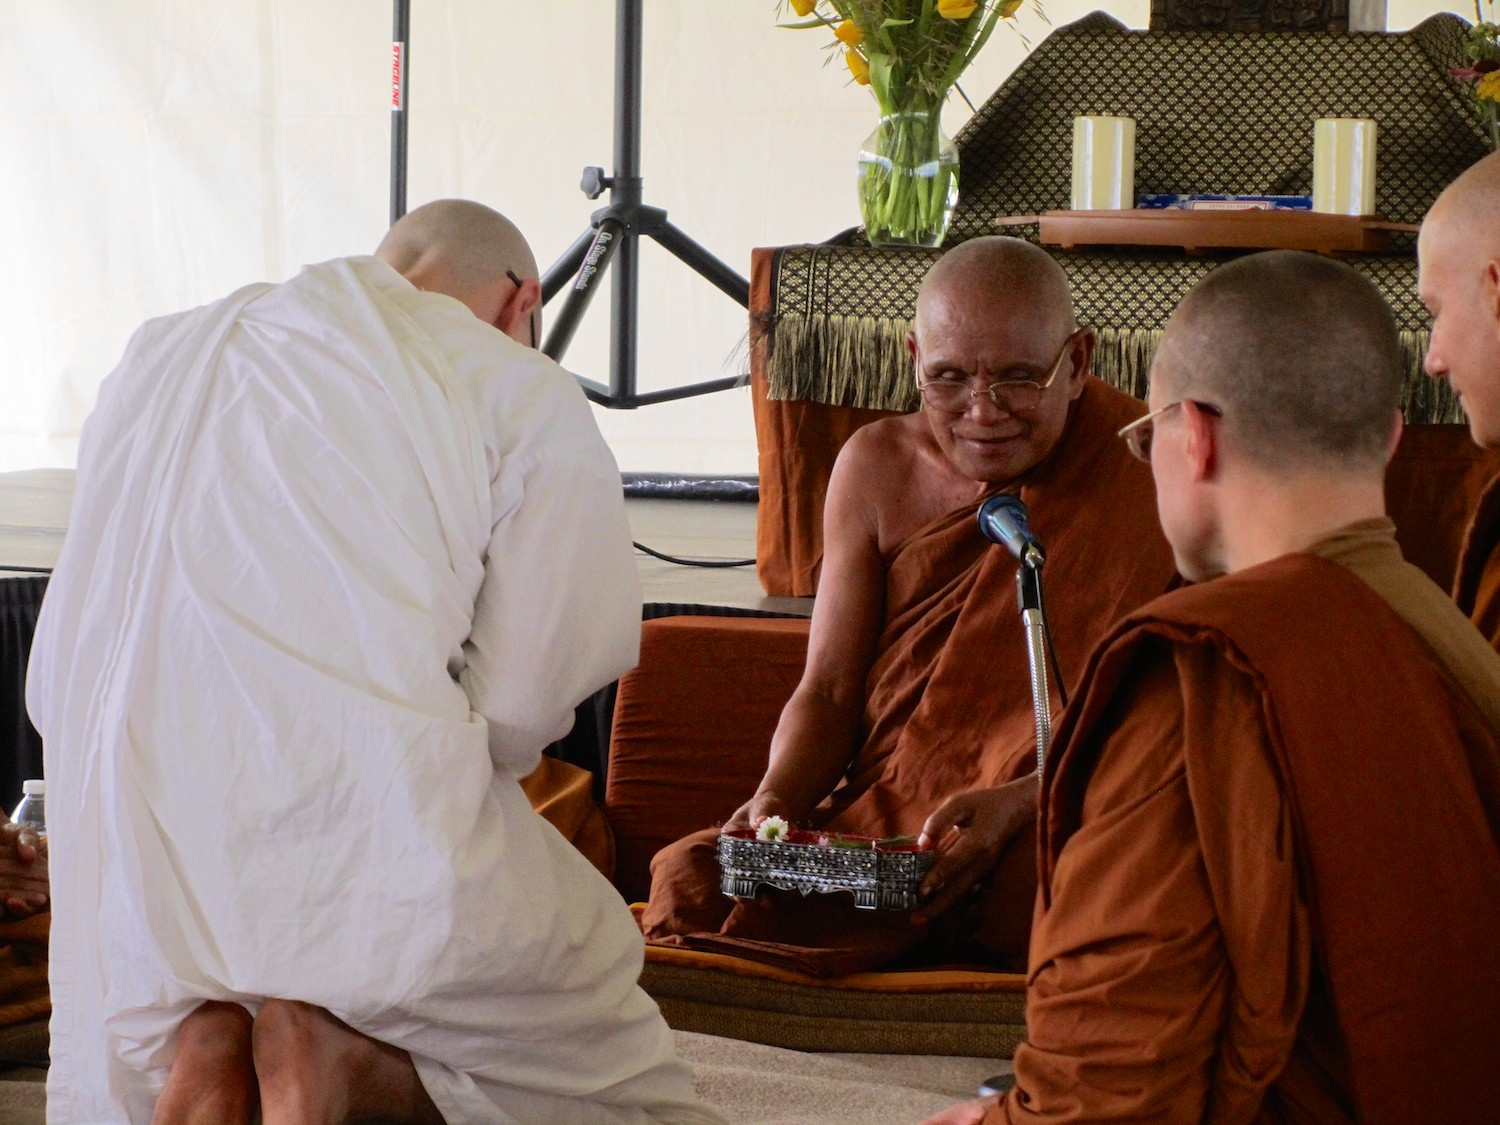 Luang Por Liem instructs Anagarika Zack – now Samanera Suñño – during his novice ordination